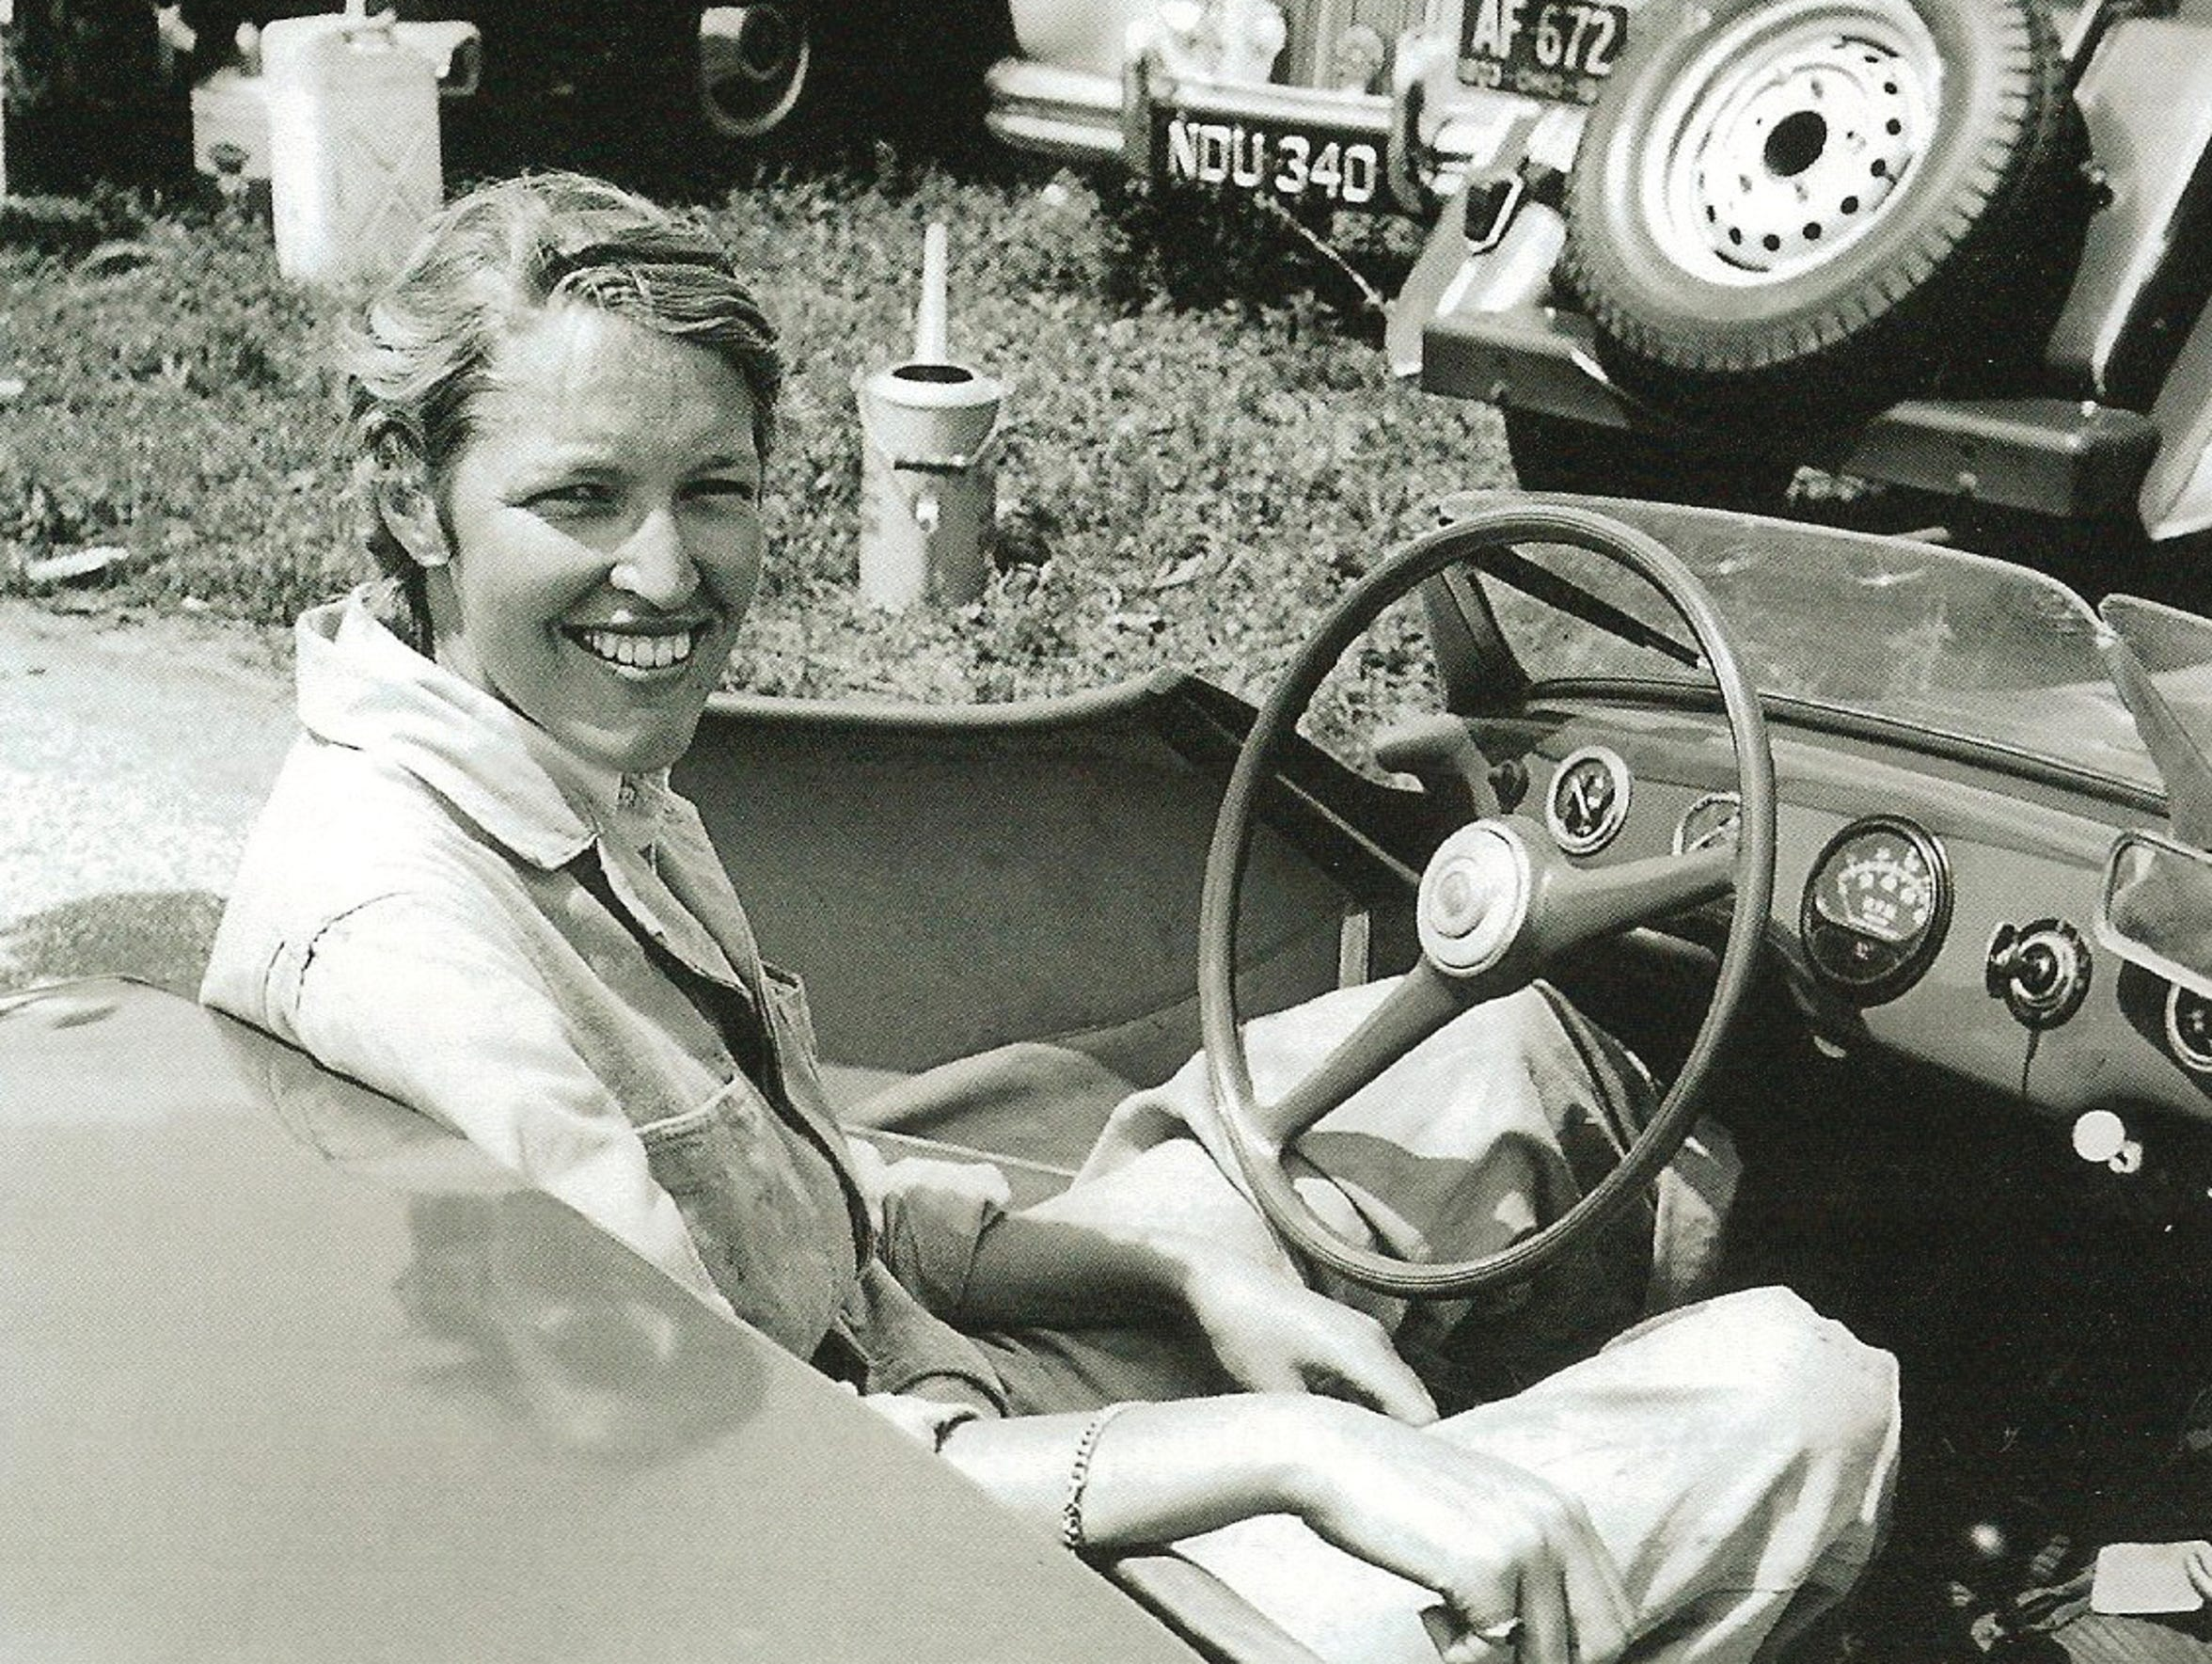 Isabelle de Tomaso shown as a race car driver in Italy